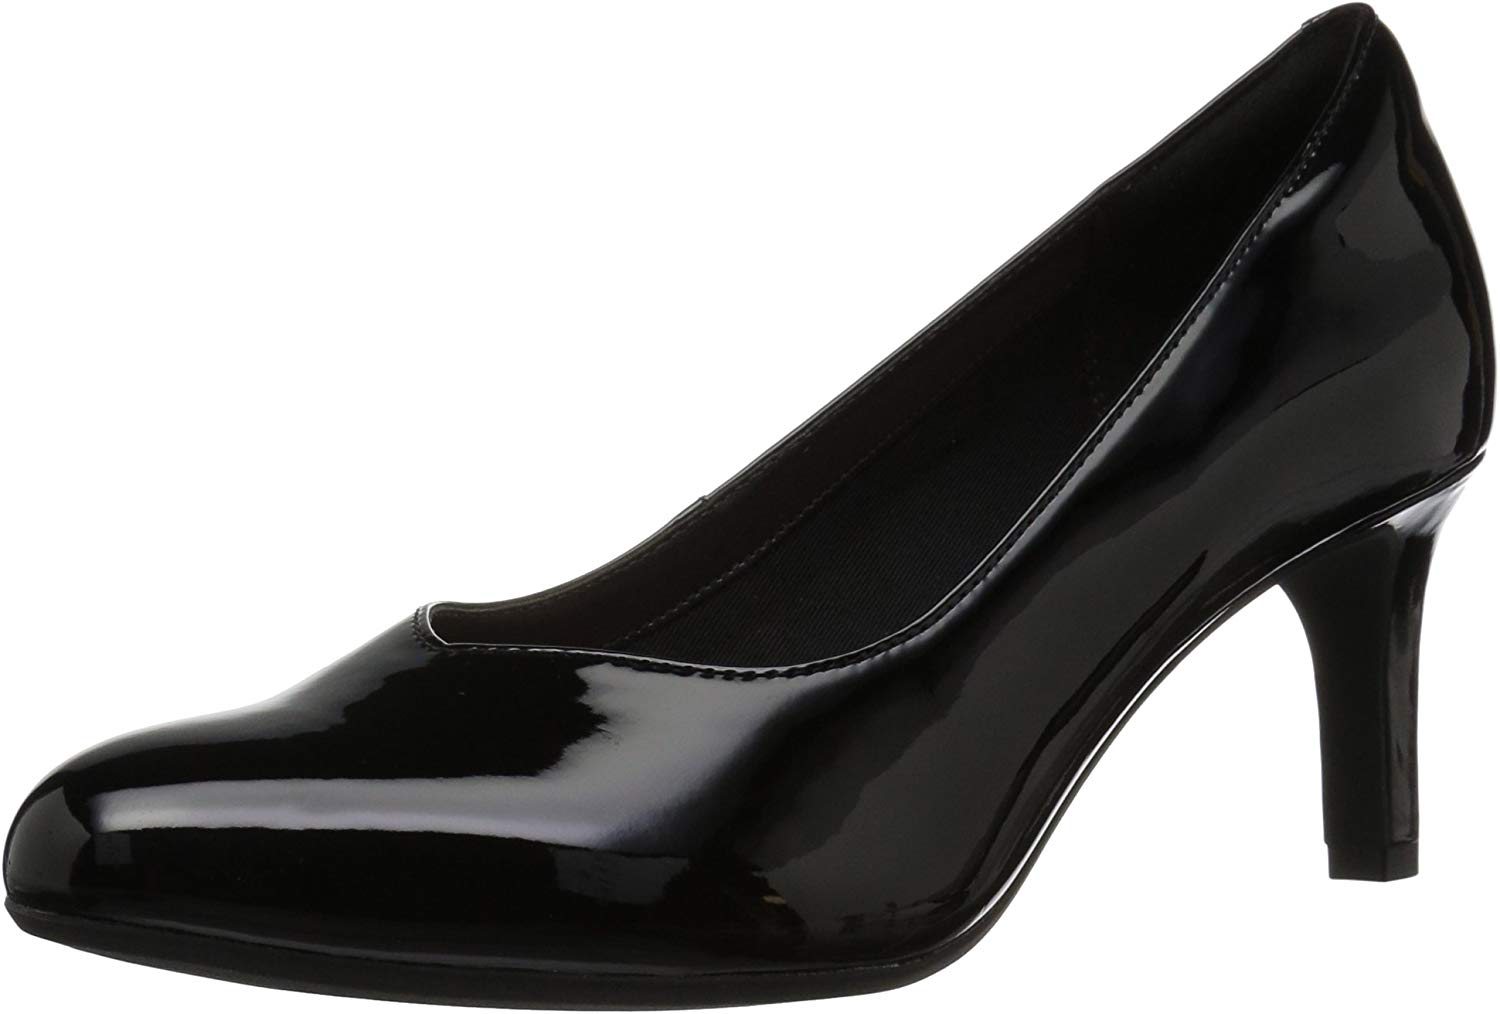 Clarks Wouomo Dancer Nolin Pump, nero Synthetic Patent, 080 M US